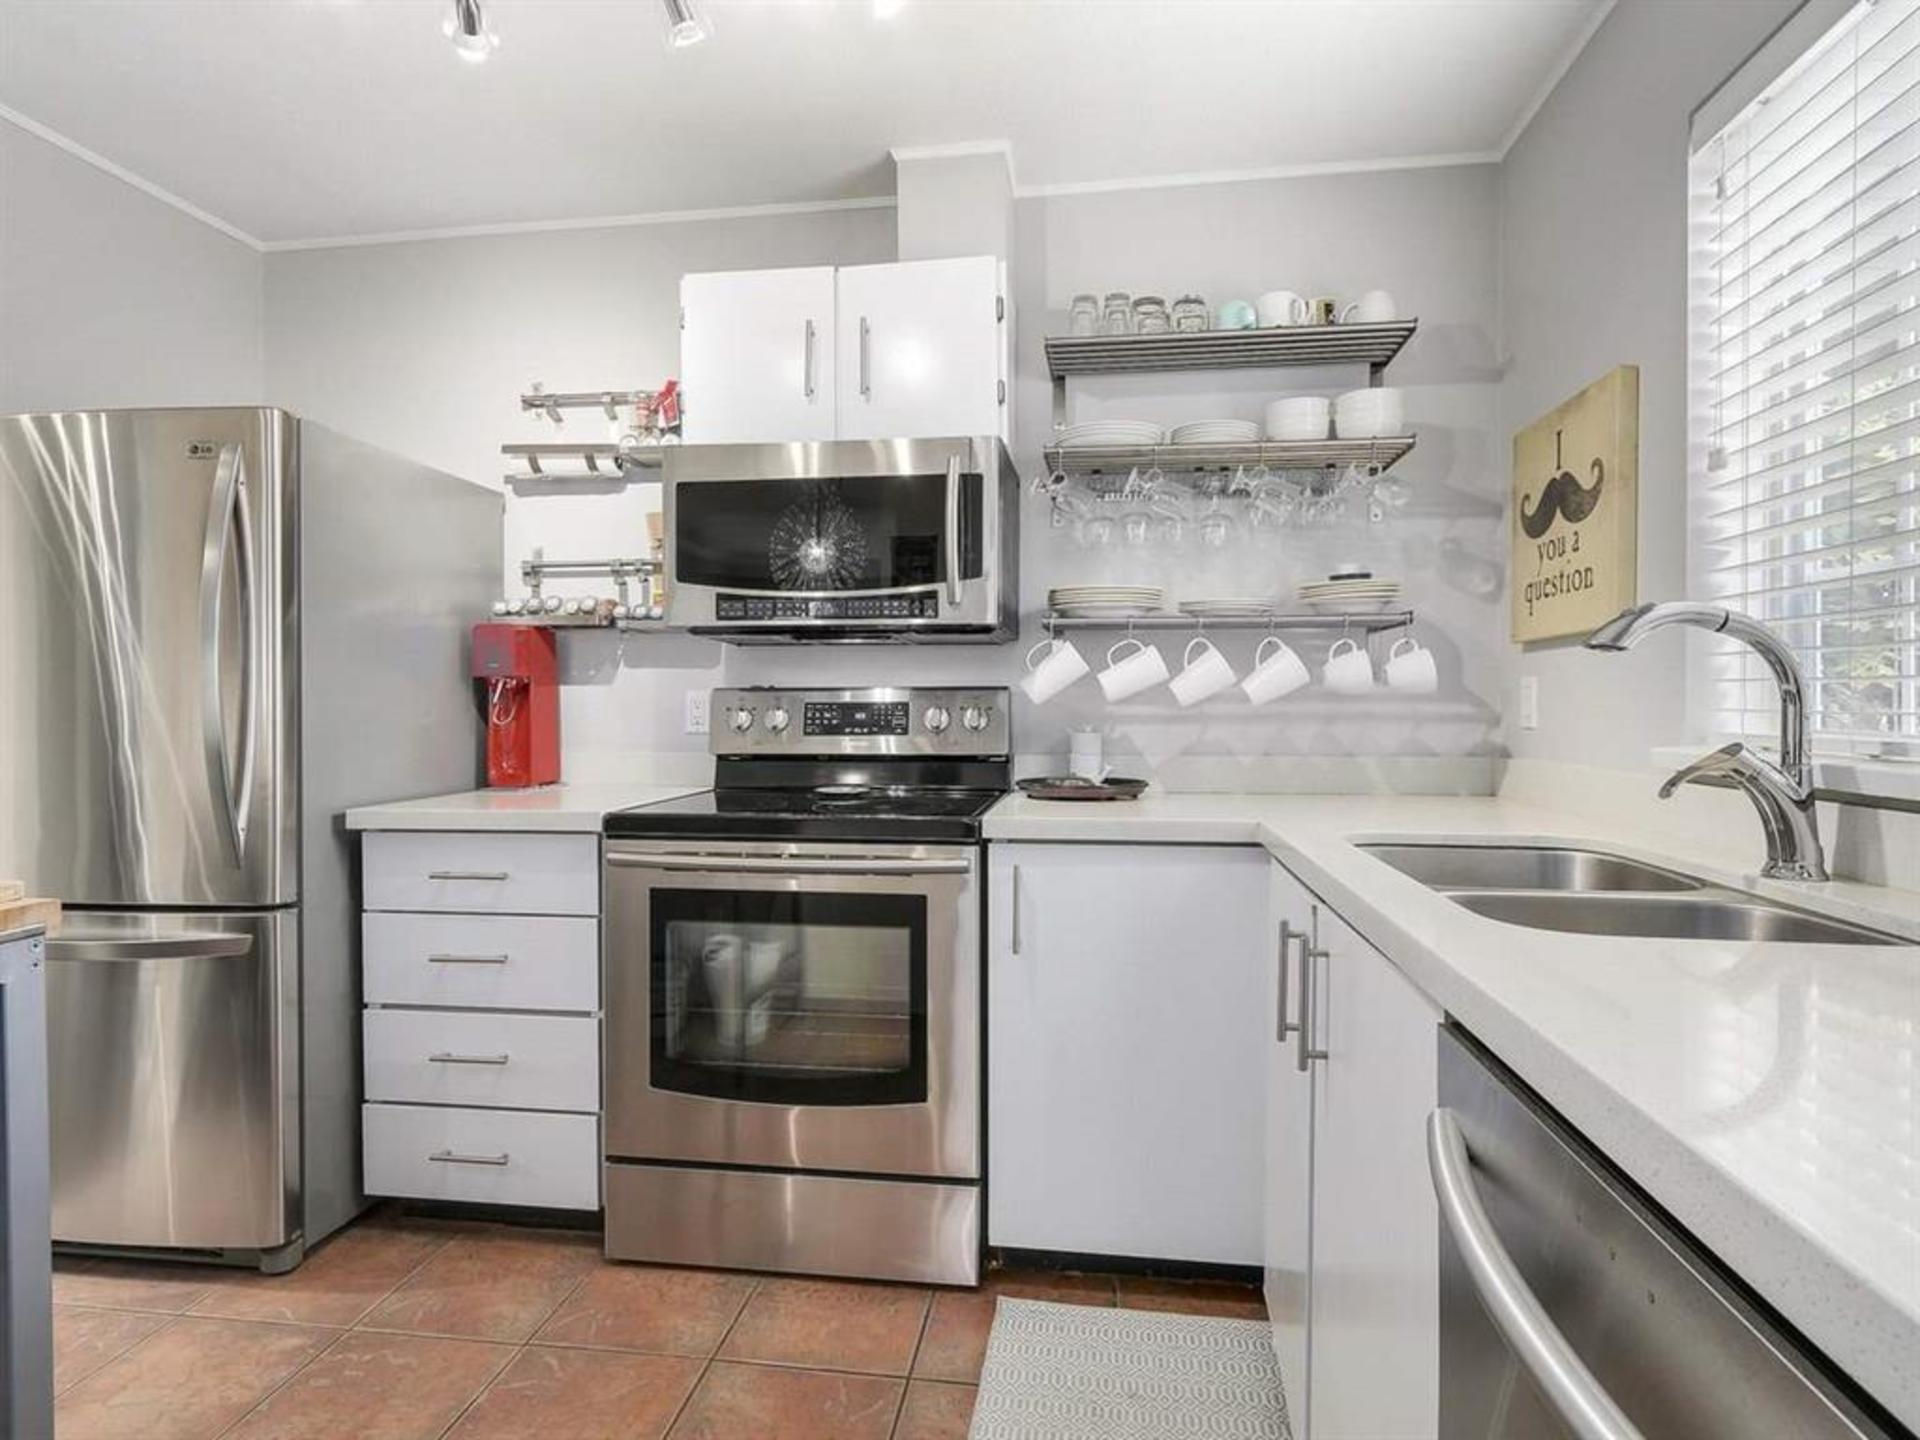 kitchen updated appliances at 108 - 1386 73, Marpole, Vancouver West